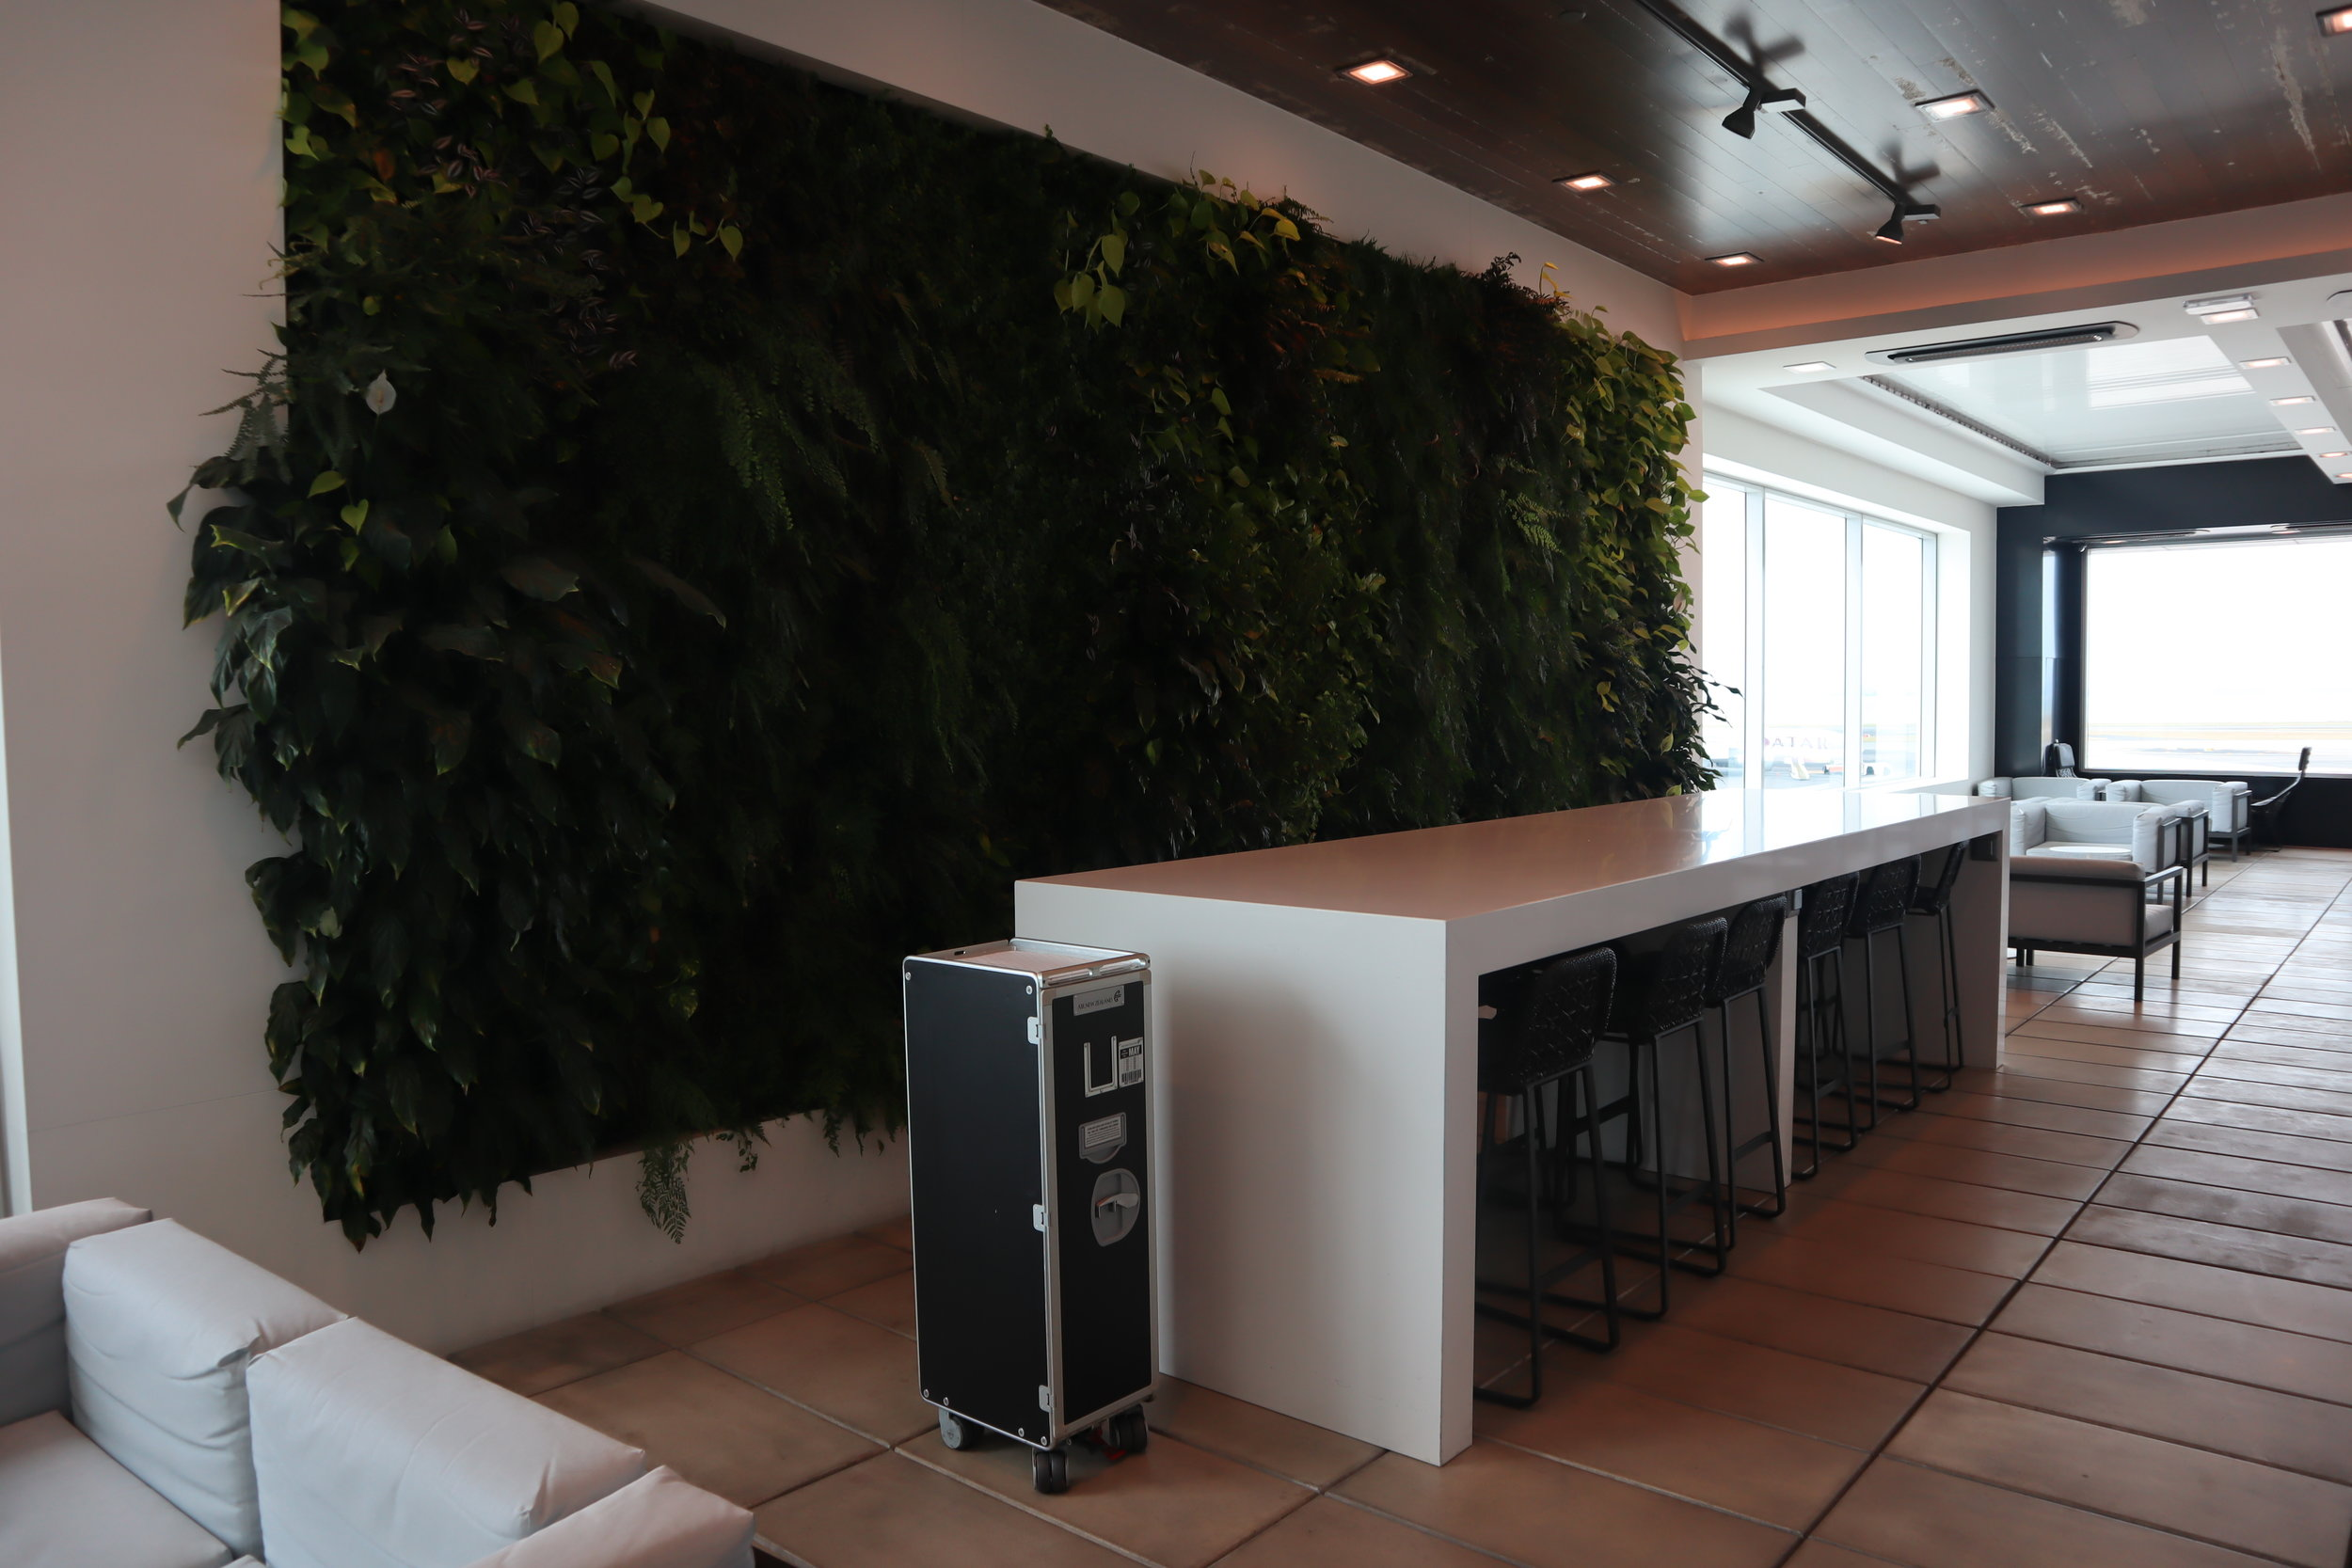 Air New Zealand Lounge Auckland – Outdoor terrace seating